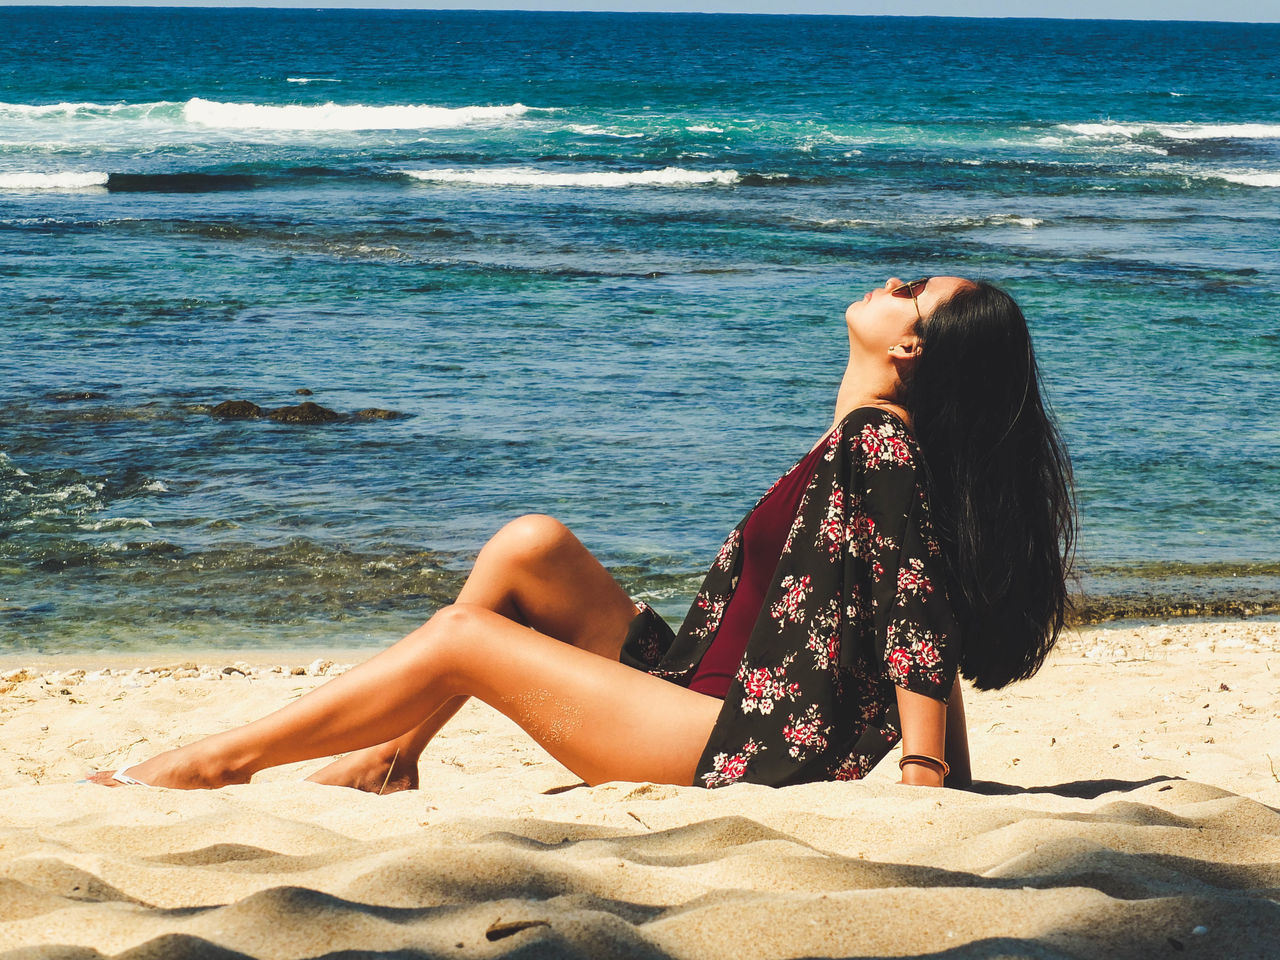 EyeEm Selects Beach Sand Sea Vacations Relaxation Only Women Young Adult Beautiful Woman Summer Young Women One Person One Woman Only Beauty Leisure Activity Nature Sunbathing Adult Water Outdoors Tranquil Scene